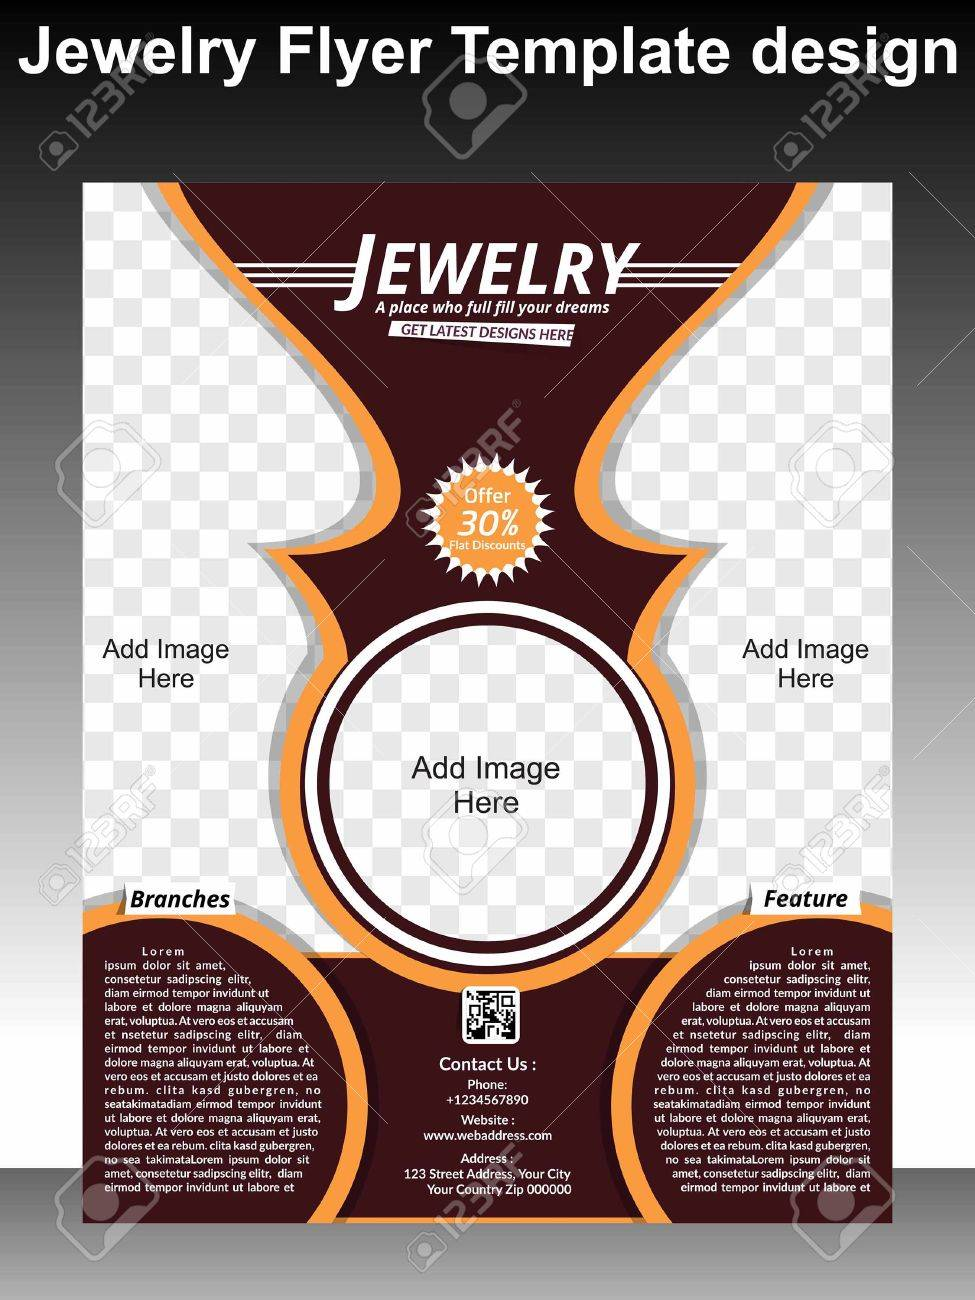 Jewelry Flyer Template Design Vector Illustration